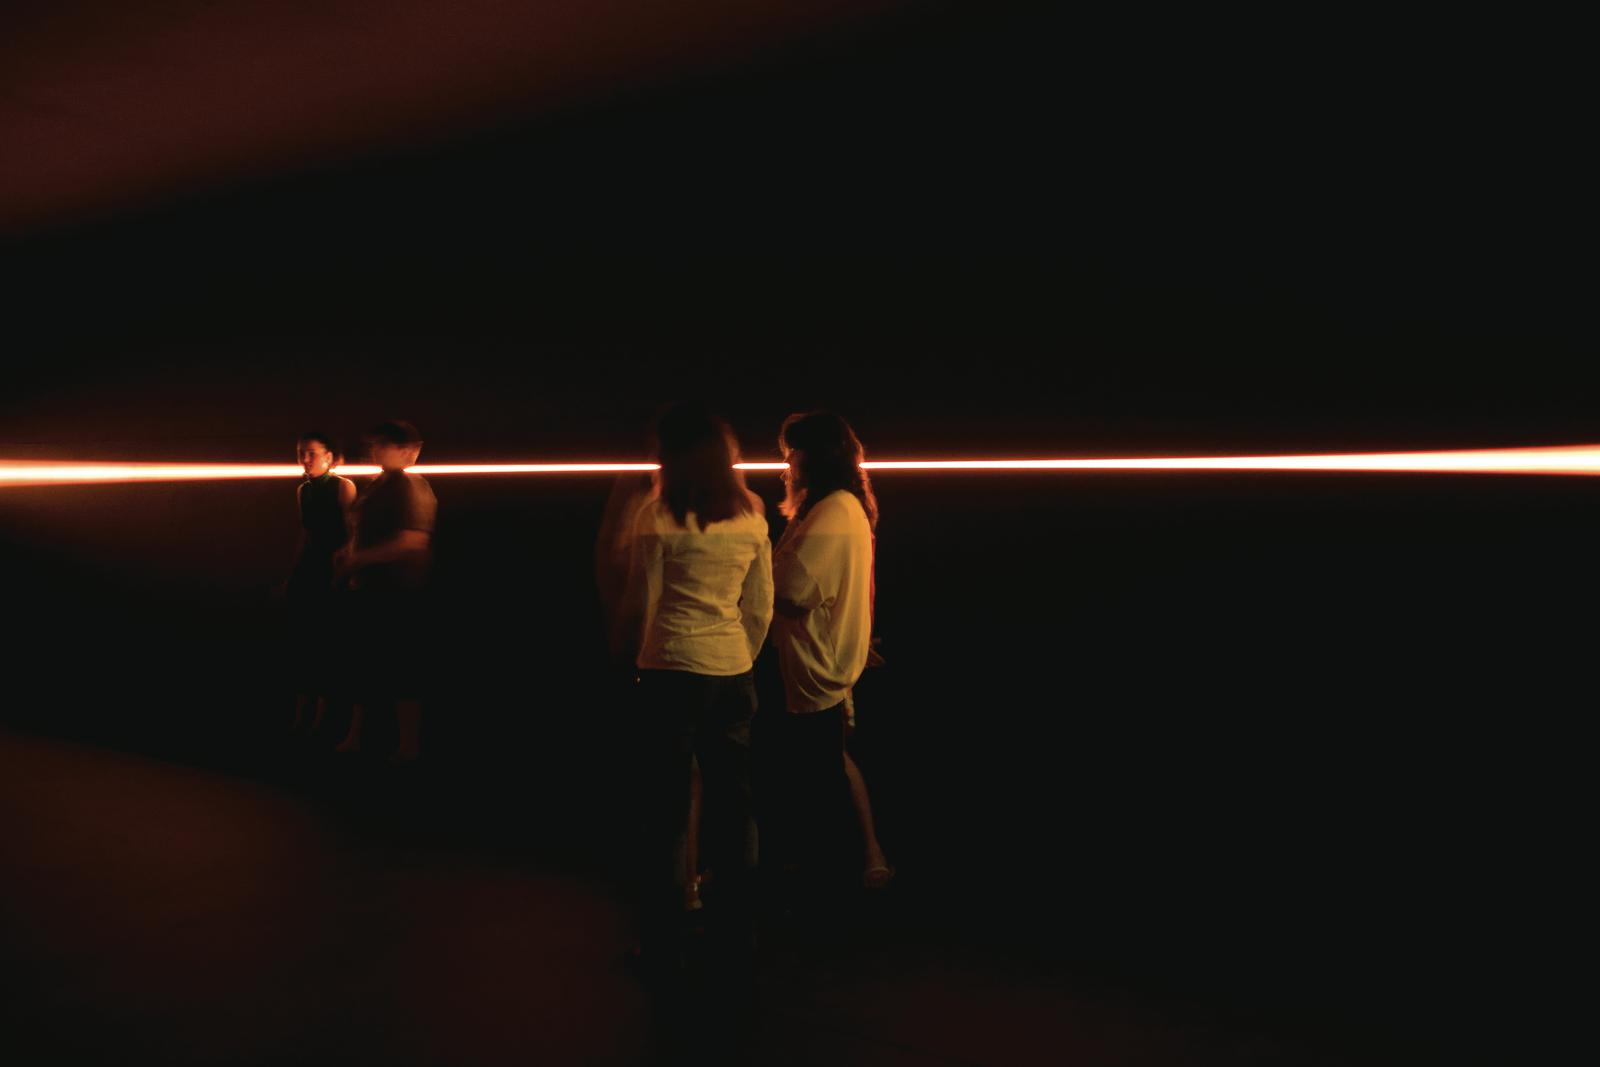 Your Black Horizon Artwork Studio Olafur Eliasson